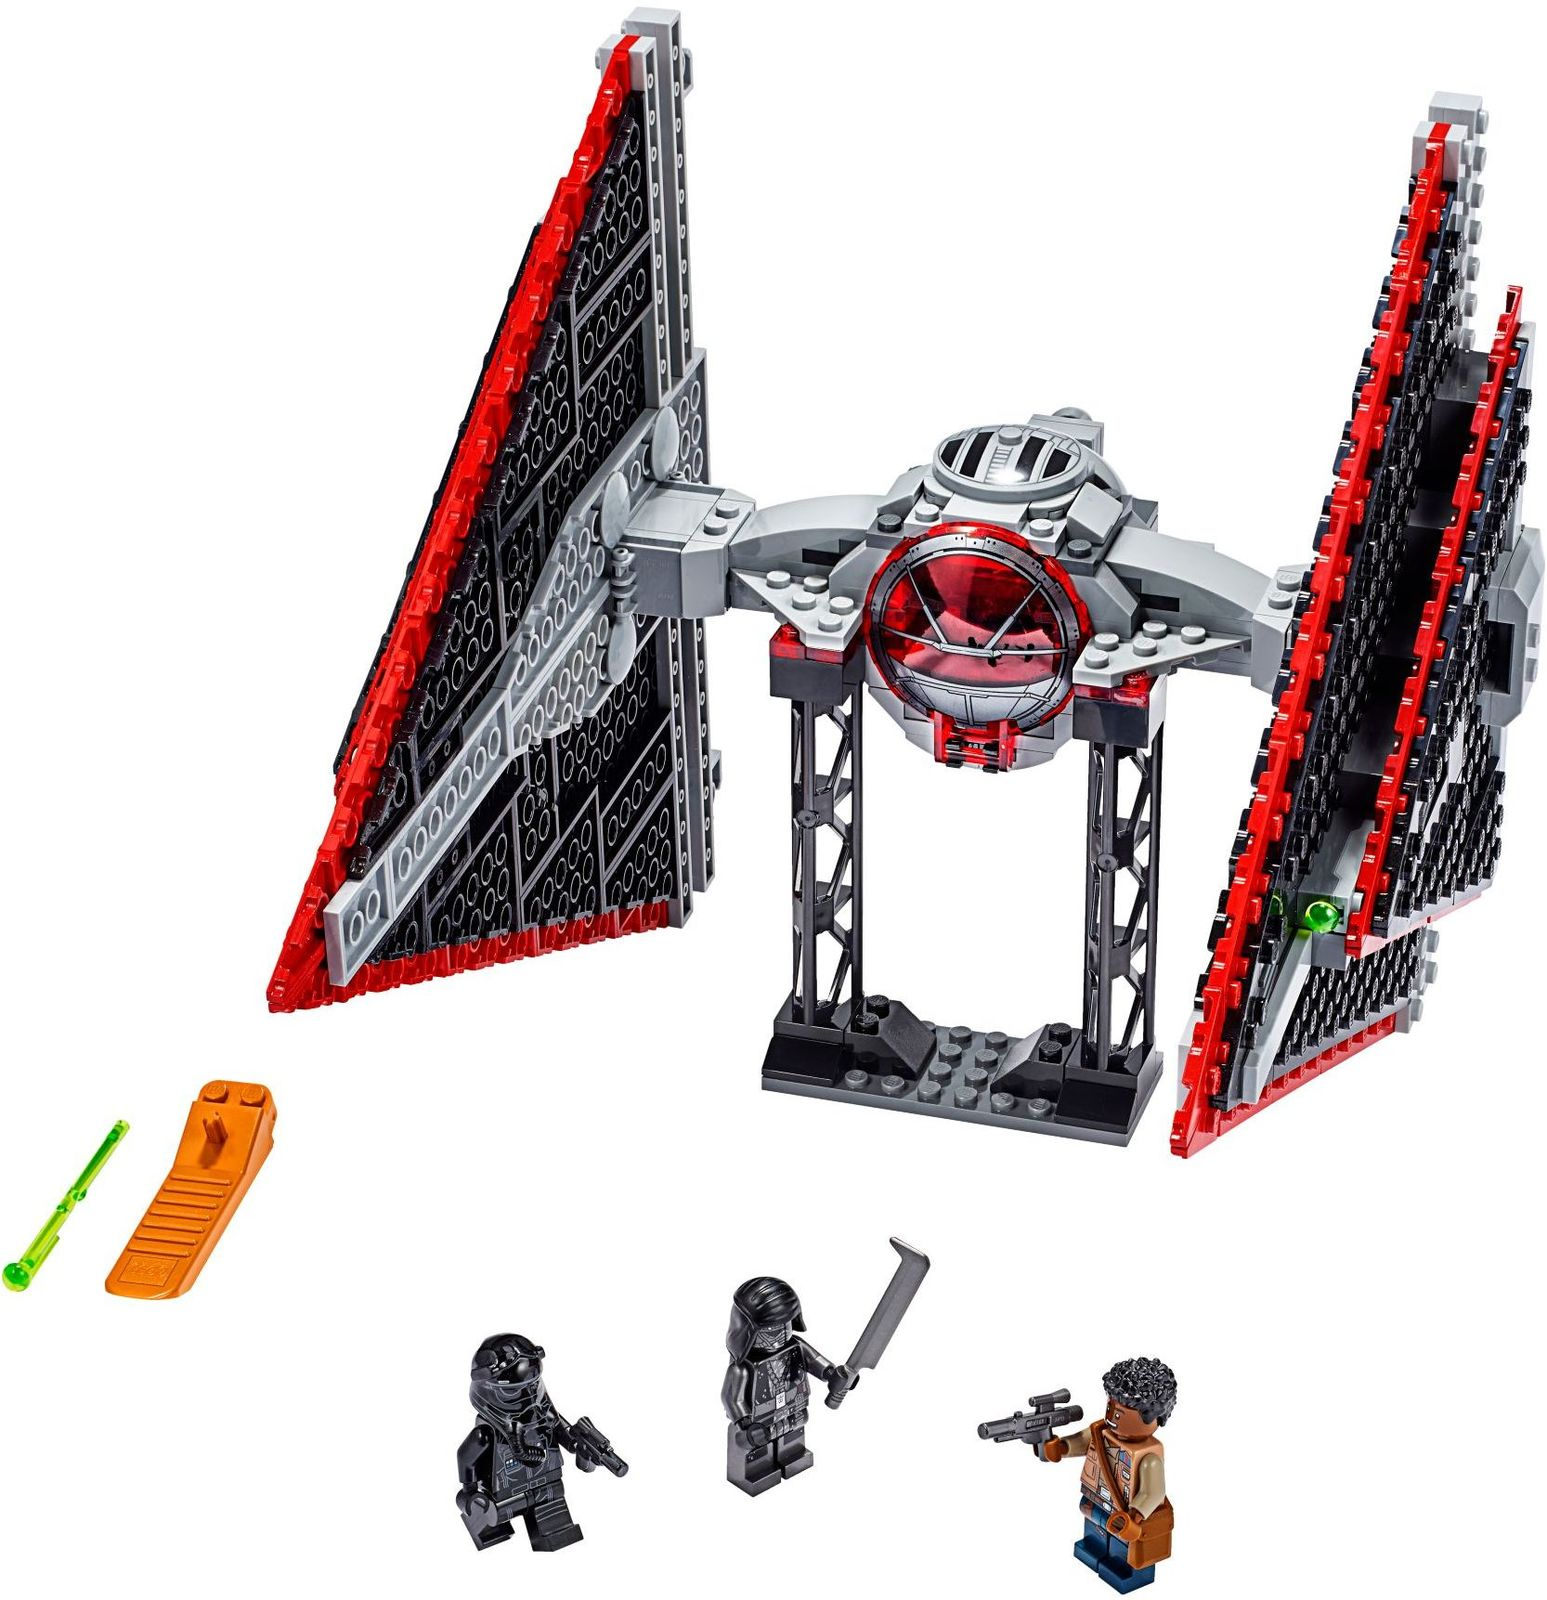 LEGO: Star Wars - Sith TIE Fighter (75272) image